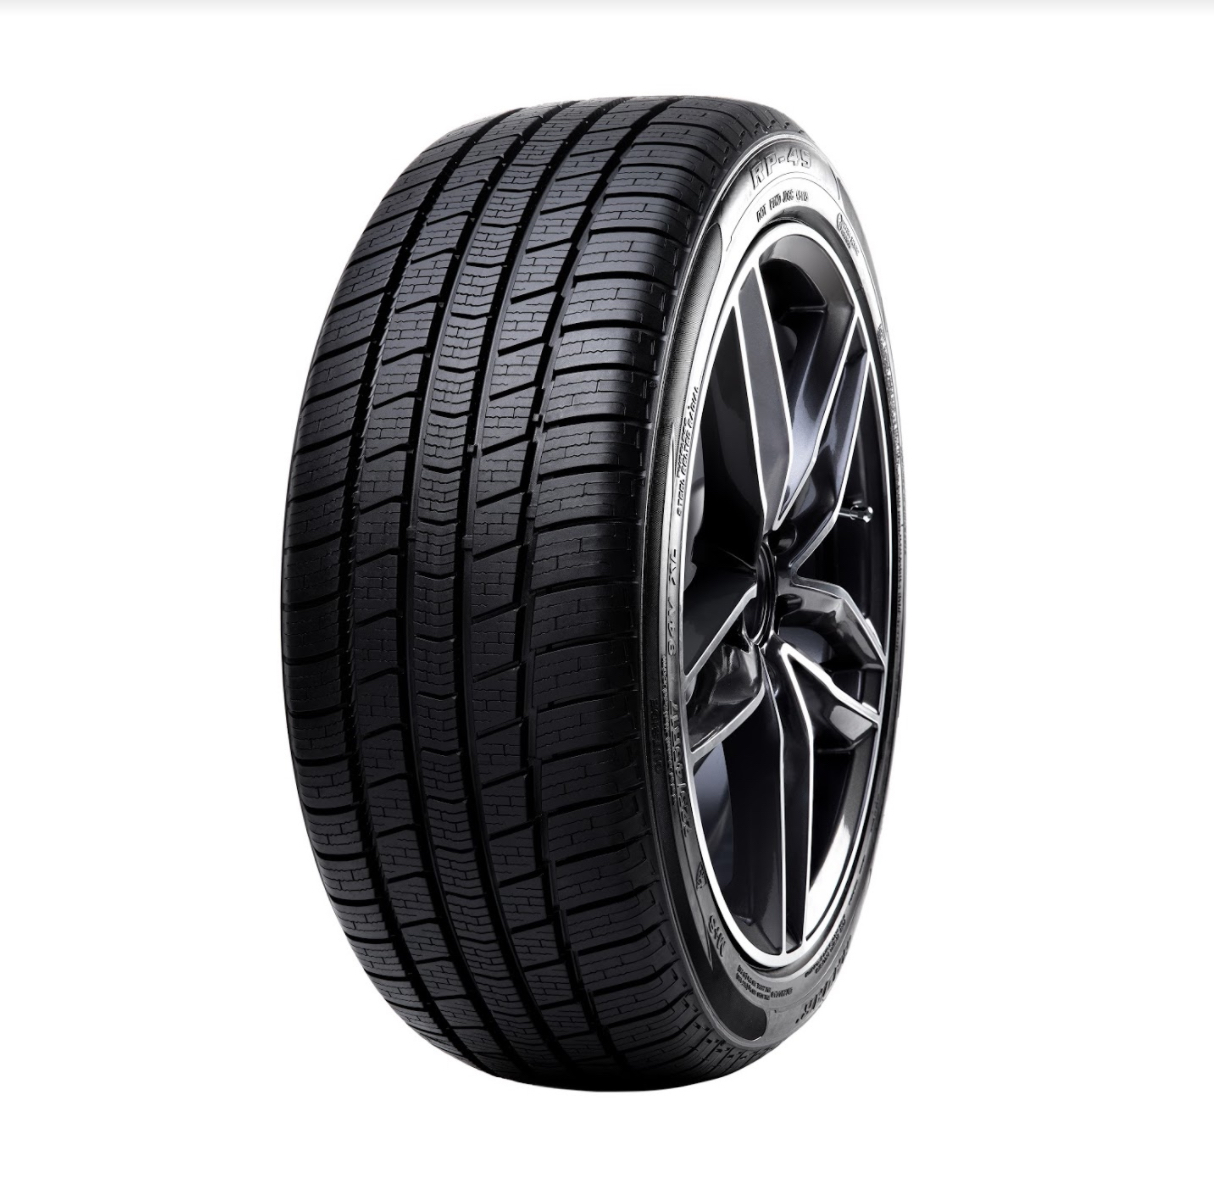 225/50R17 RADAR DIMAX 4 SEASON SPORT TOURING 98W XL (CAR ALL SEASON)